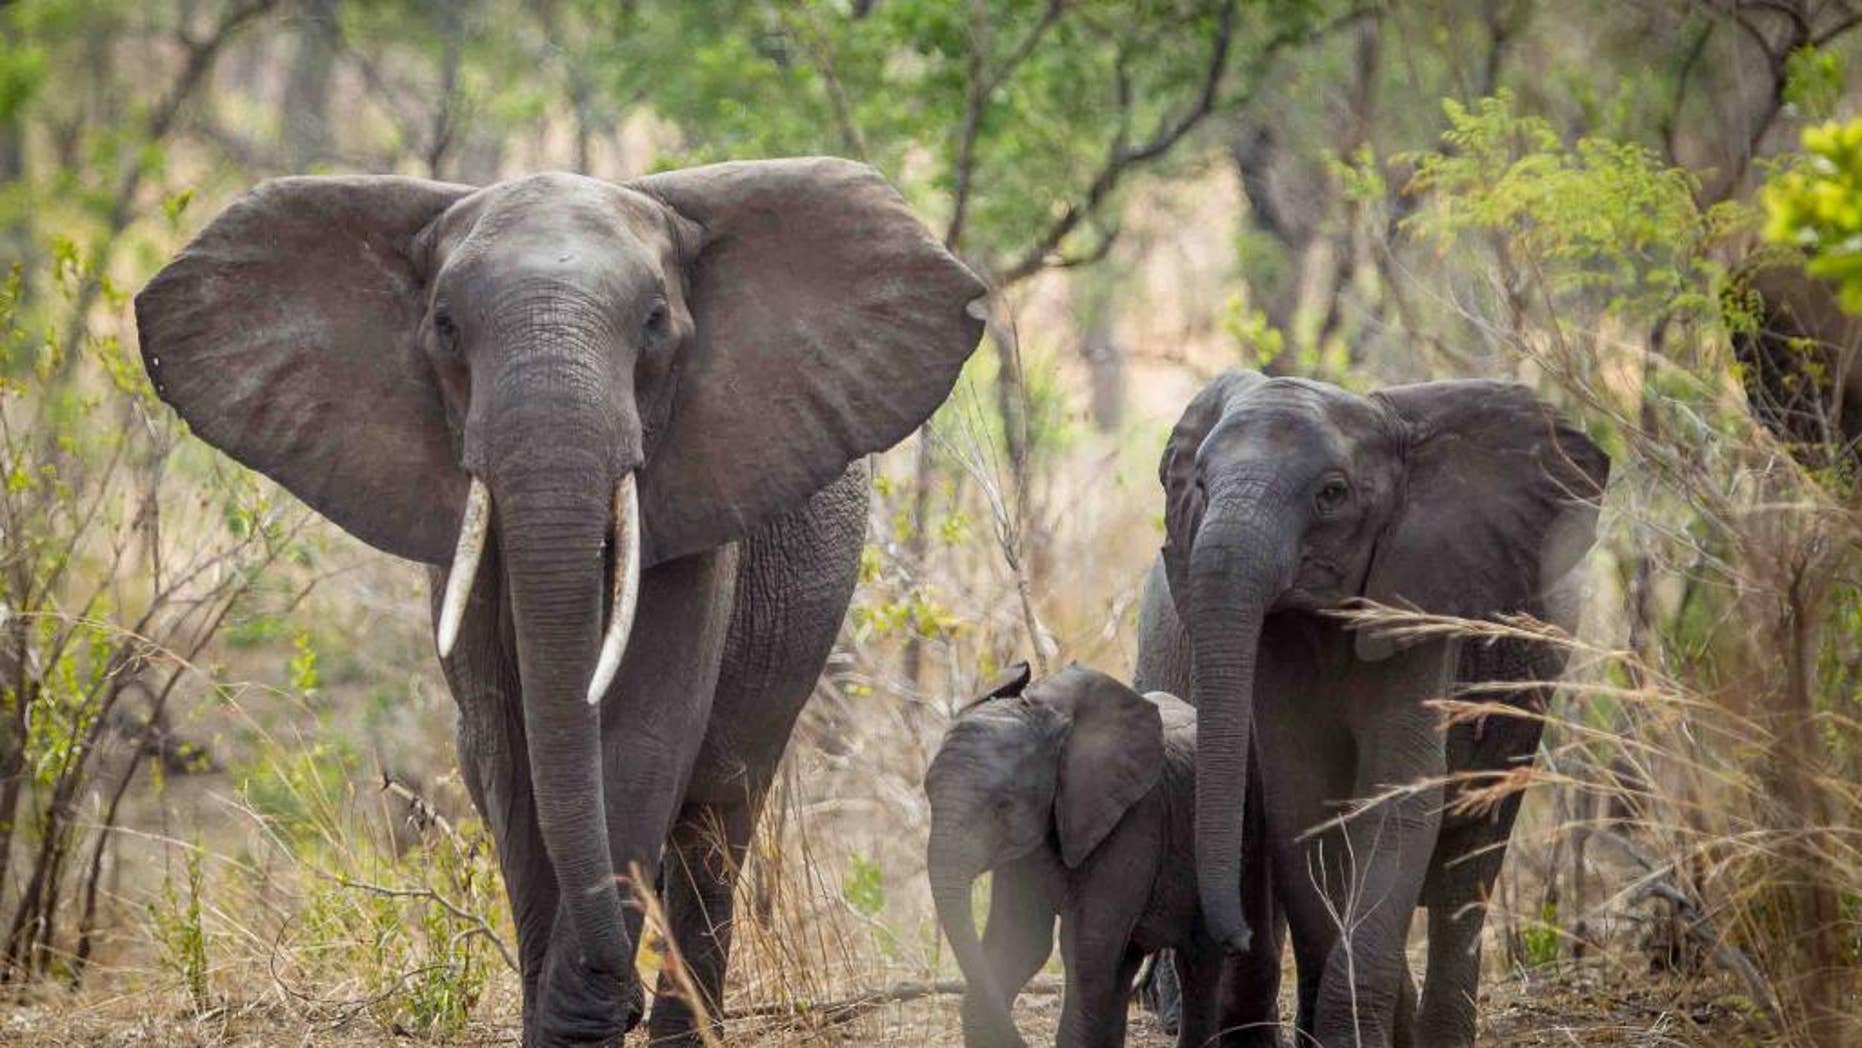 In this photo taken Dec. 2014 and supplied by African Parks elephants are seen roaming near Blantyre, Malawi. Next month, wildlife experts will start moving up to 500 elephants to a sanctuary that they hope will eventually serve as a reservoir to restore some elephant populations in other parts of Africa where the threatened species has been heavily poached. (Morgan Trimble/African Parks via AP)